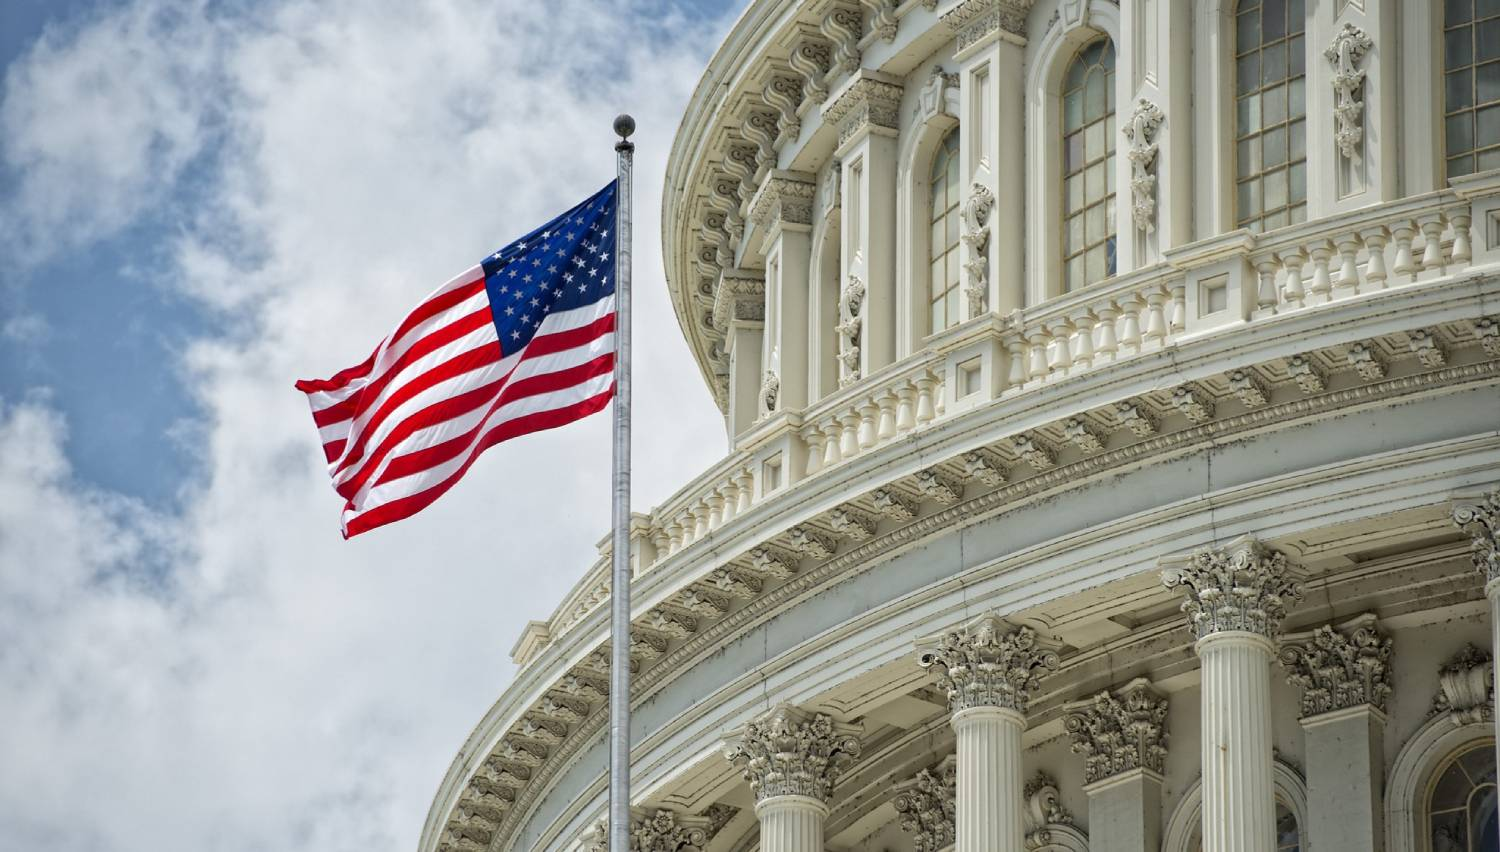 US Capitol - Things To Do In Washington, D.C.